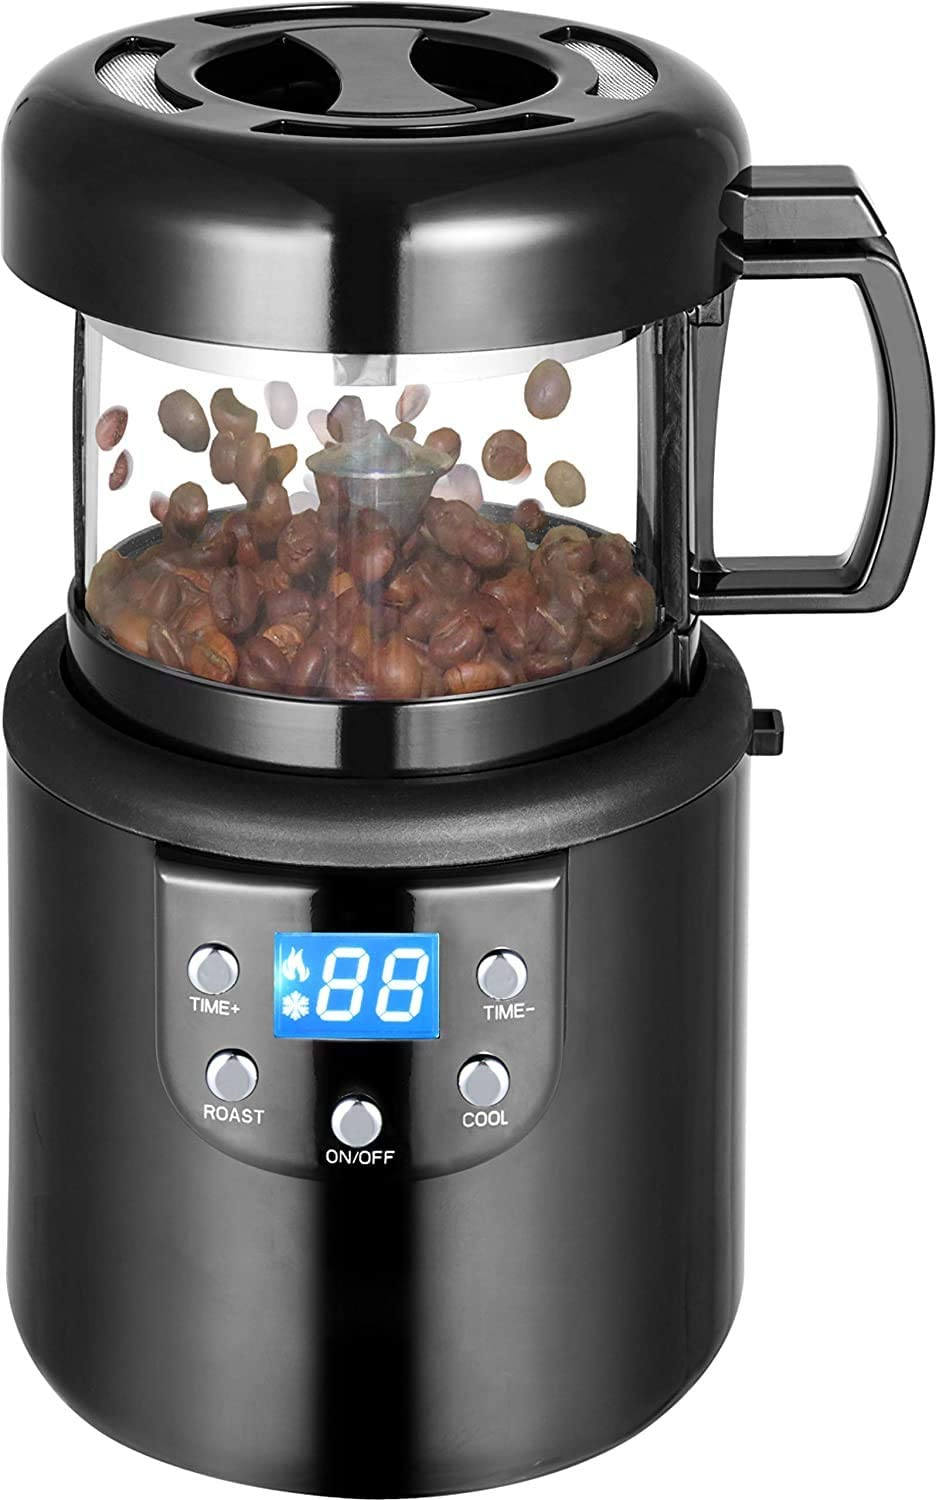 Coffee Roaster, Automatic Hot Air Coffee Roaster, 110V Electric Coffee Bean Roaster Machine Peanuts Nuts Popcorn Coffee Bean Baking Machine for Home Use